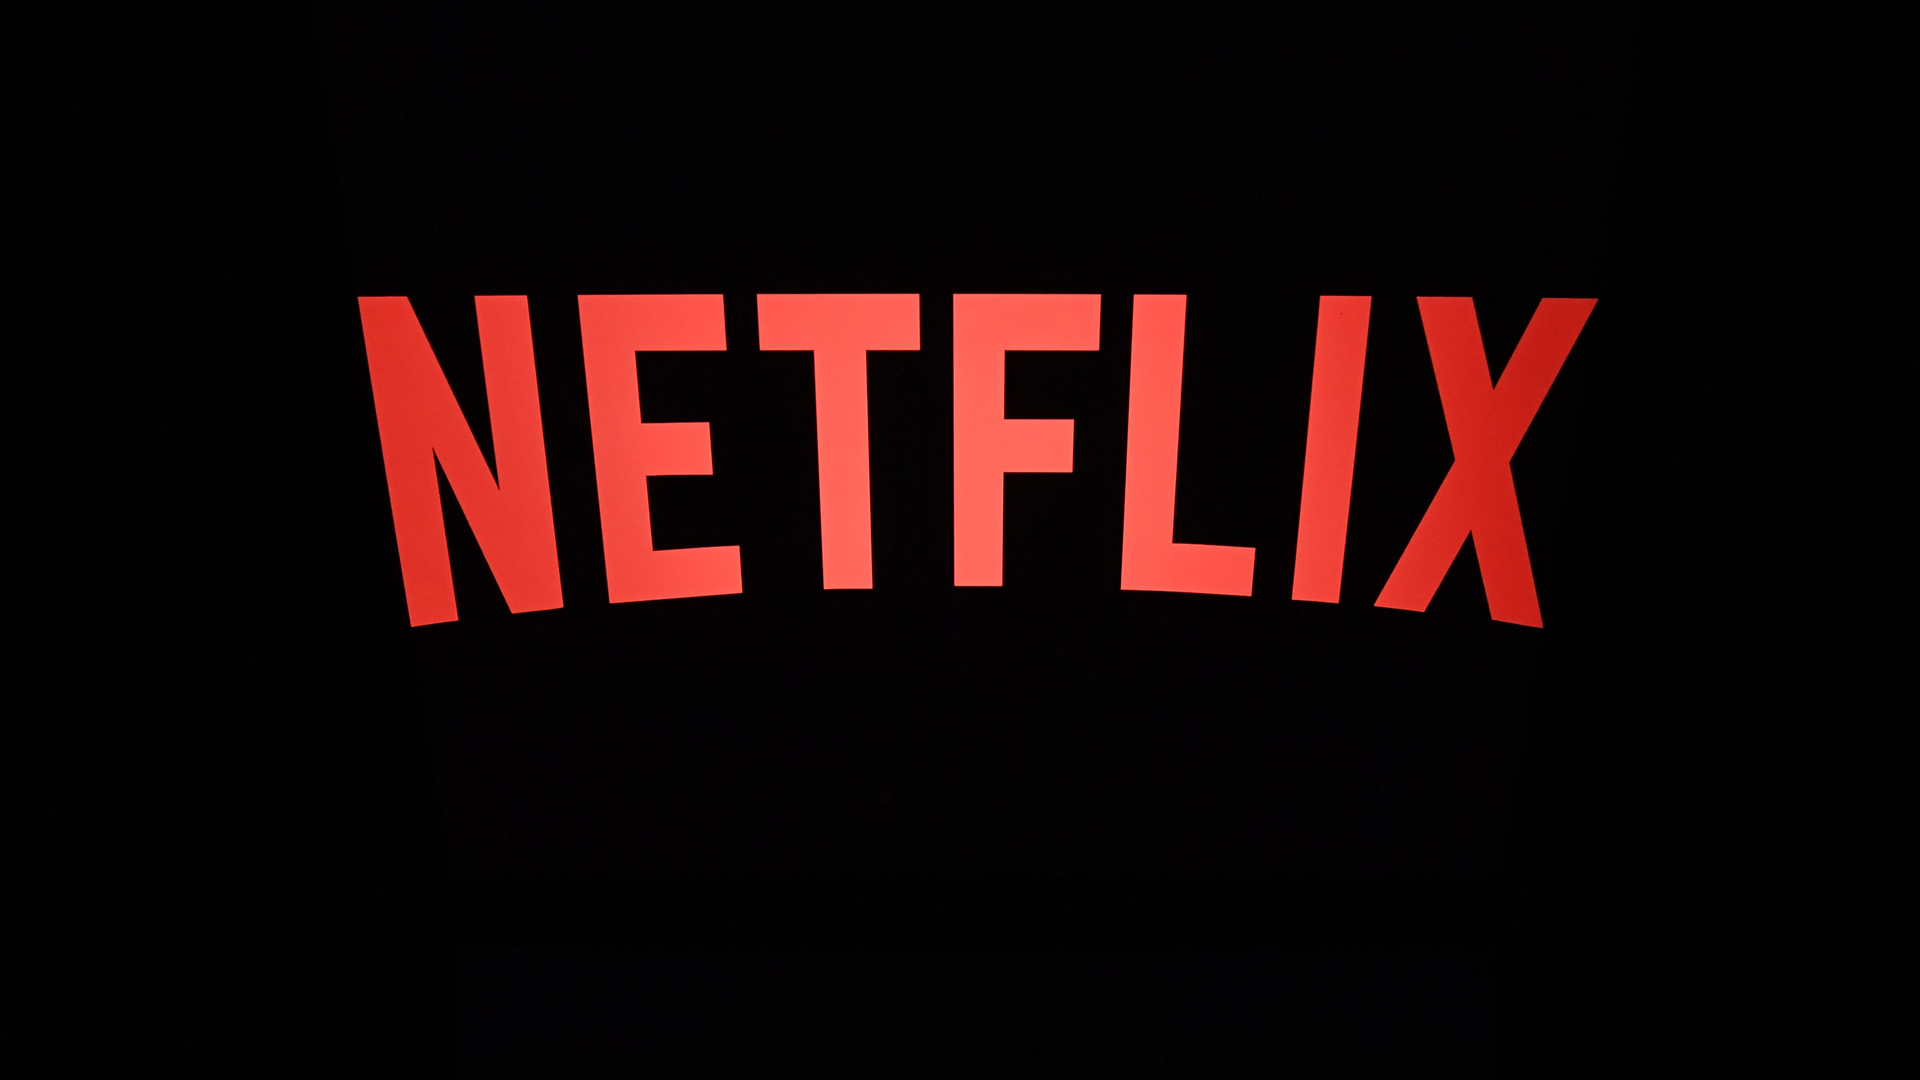 This photo taken on April 19, 2018 shows the logo of the Netflix entertainment company. (Credit: LIONEL BONAVENTURE/AFP/Getty Images)